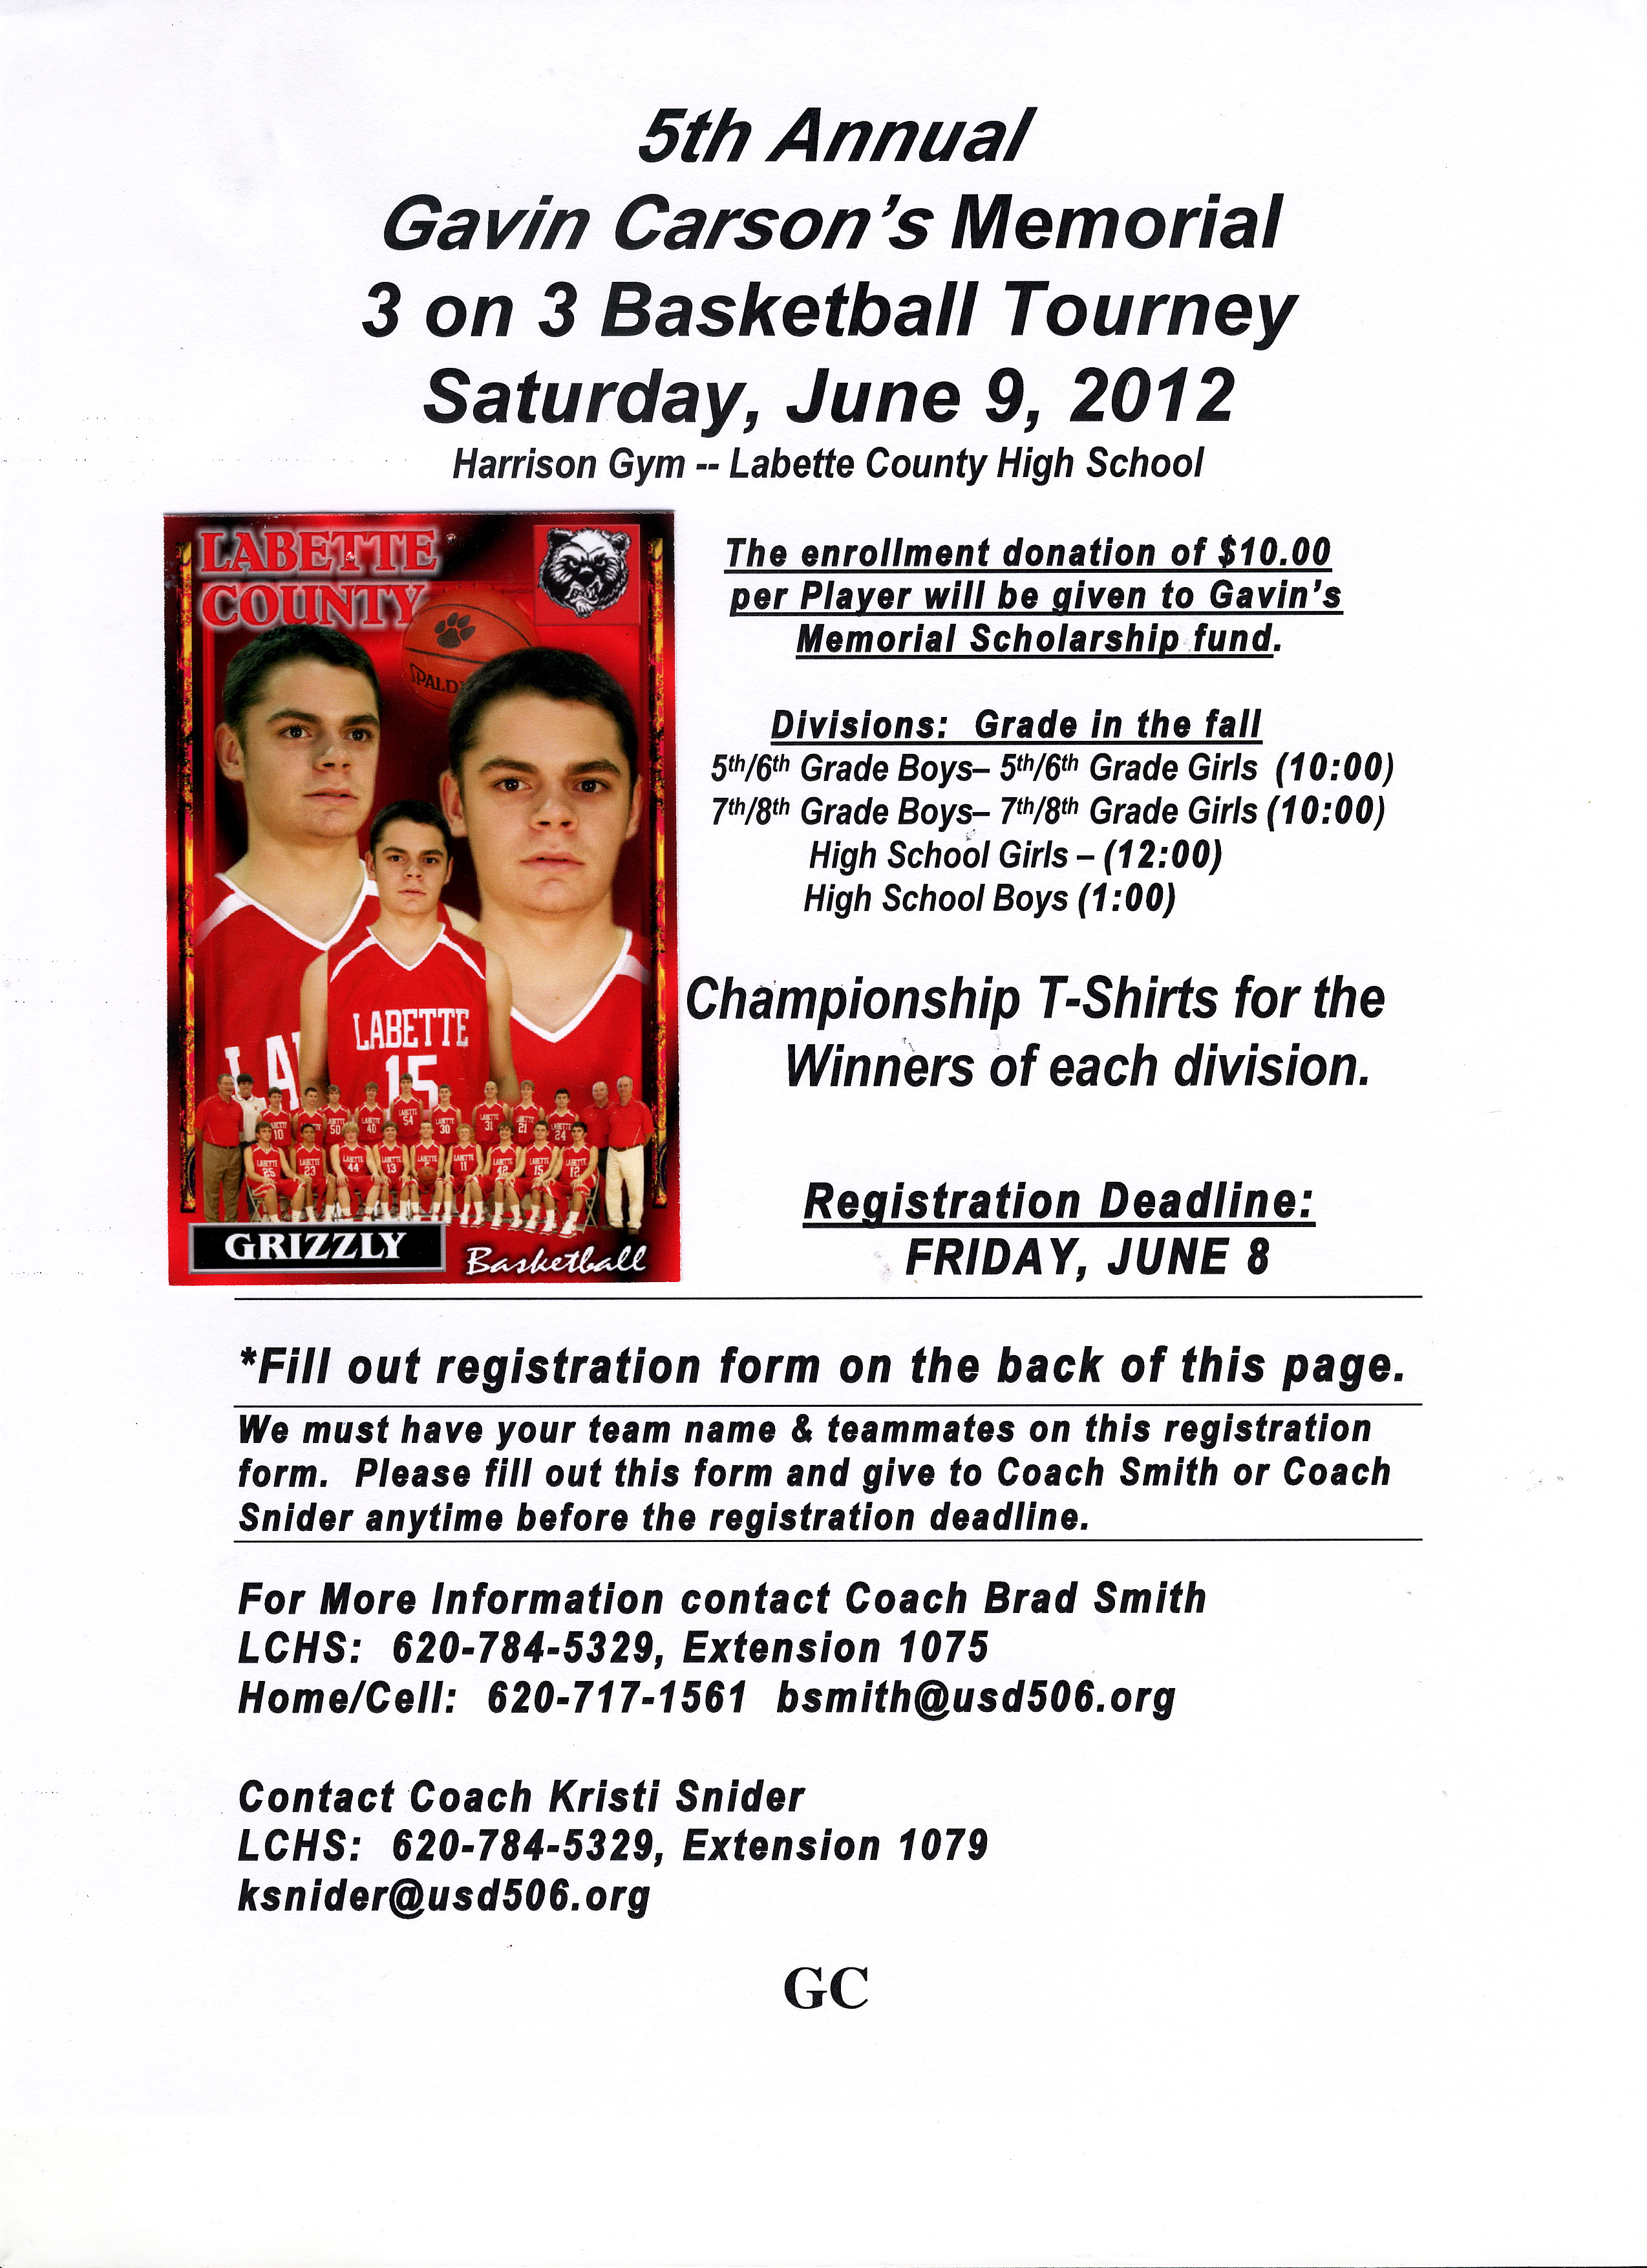 Labette county usd 506 5th annual gavin carsons memorial 3 on 3 5th annual gavin carsons memorial 3 on 3 basketball tournament inserted image registration form sciox Gallery